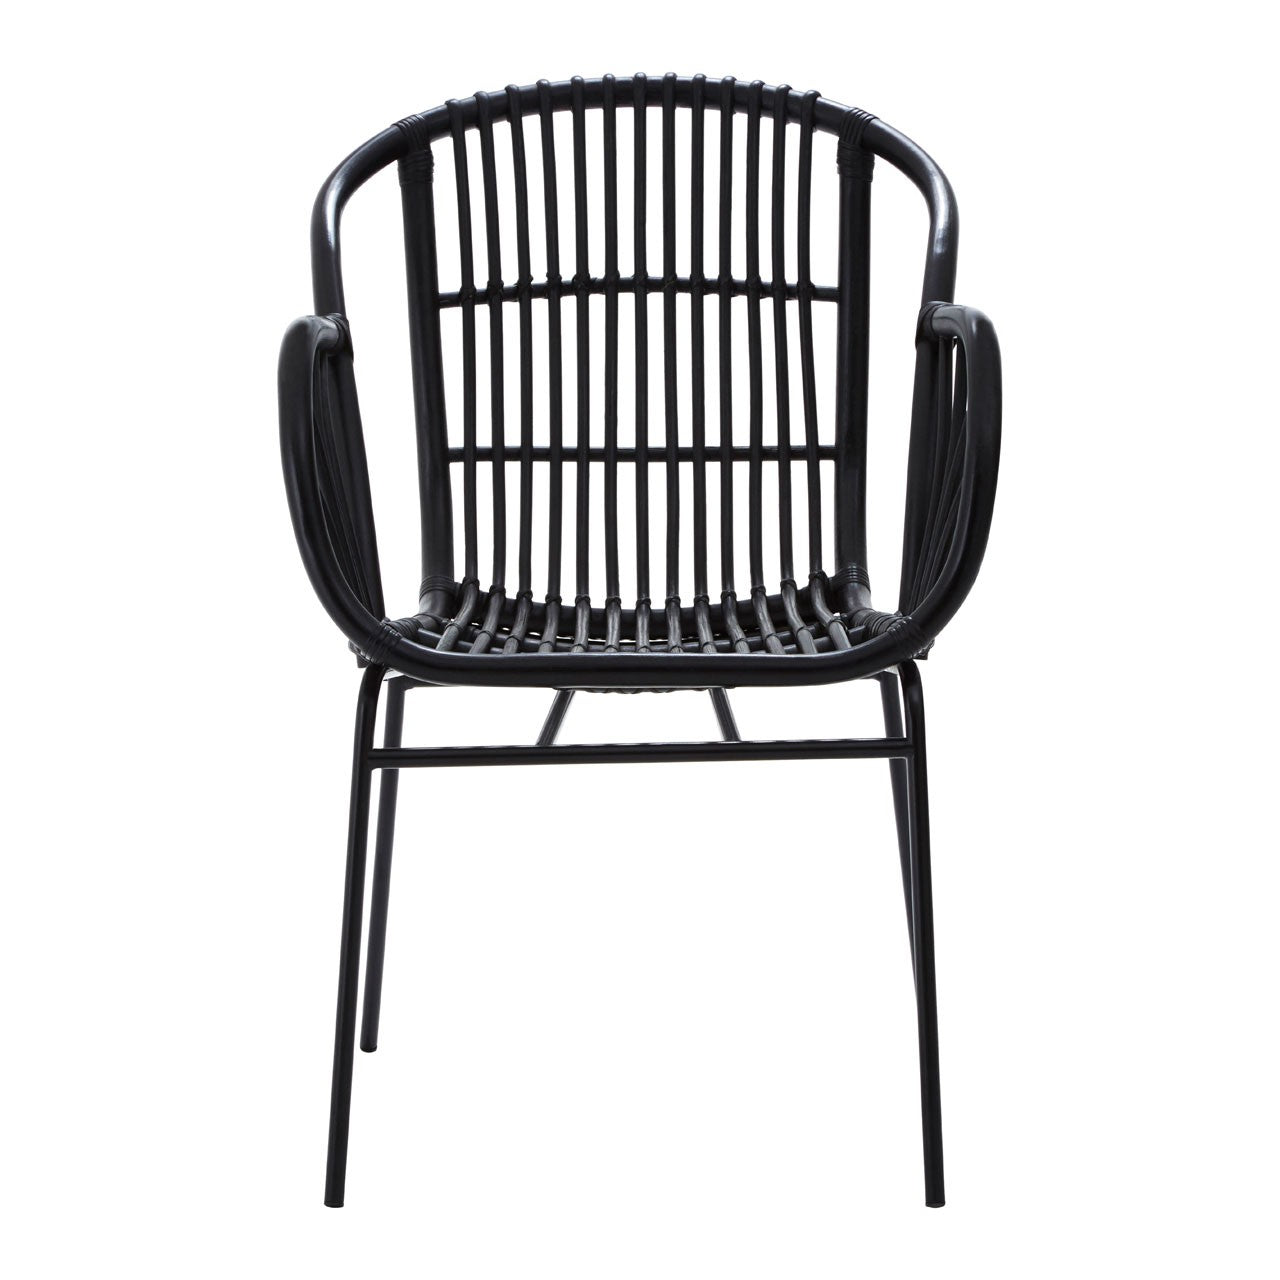 Lagom Rattan Chair in Black Iron